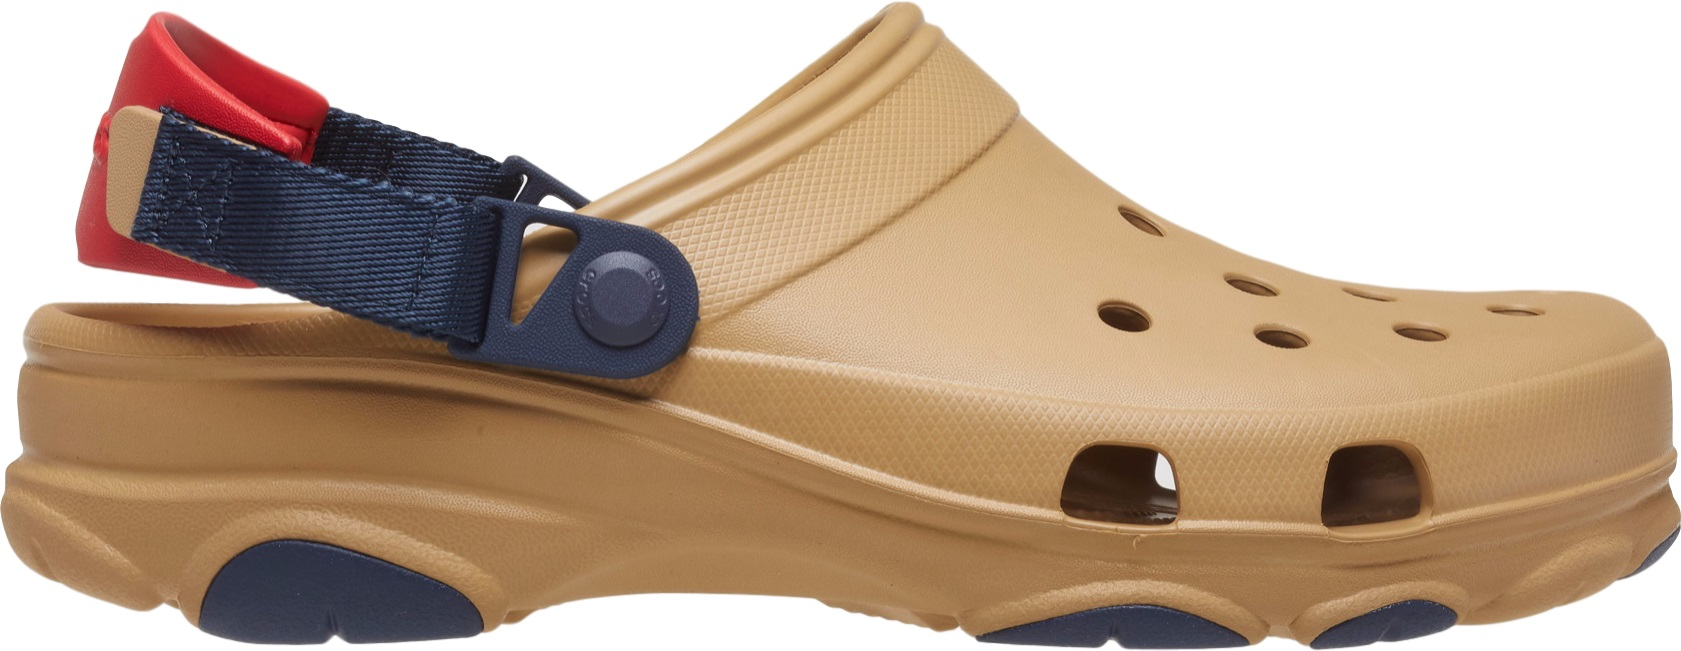 Crocs™ Classic All Terrain Clog Tan/Multi 43,5